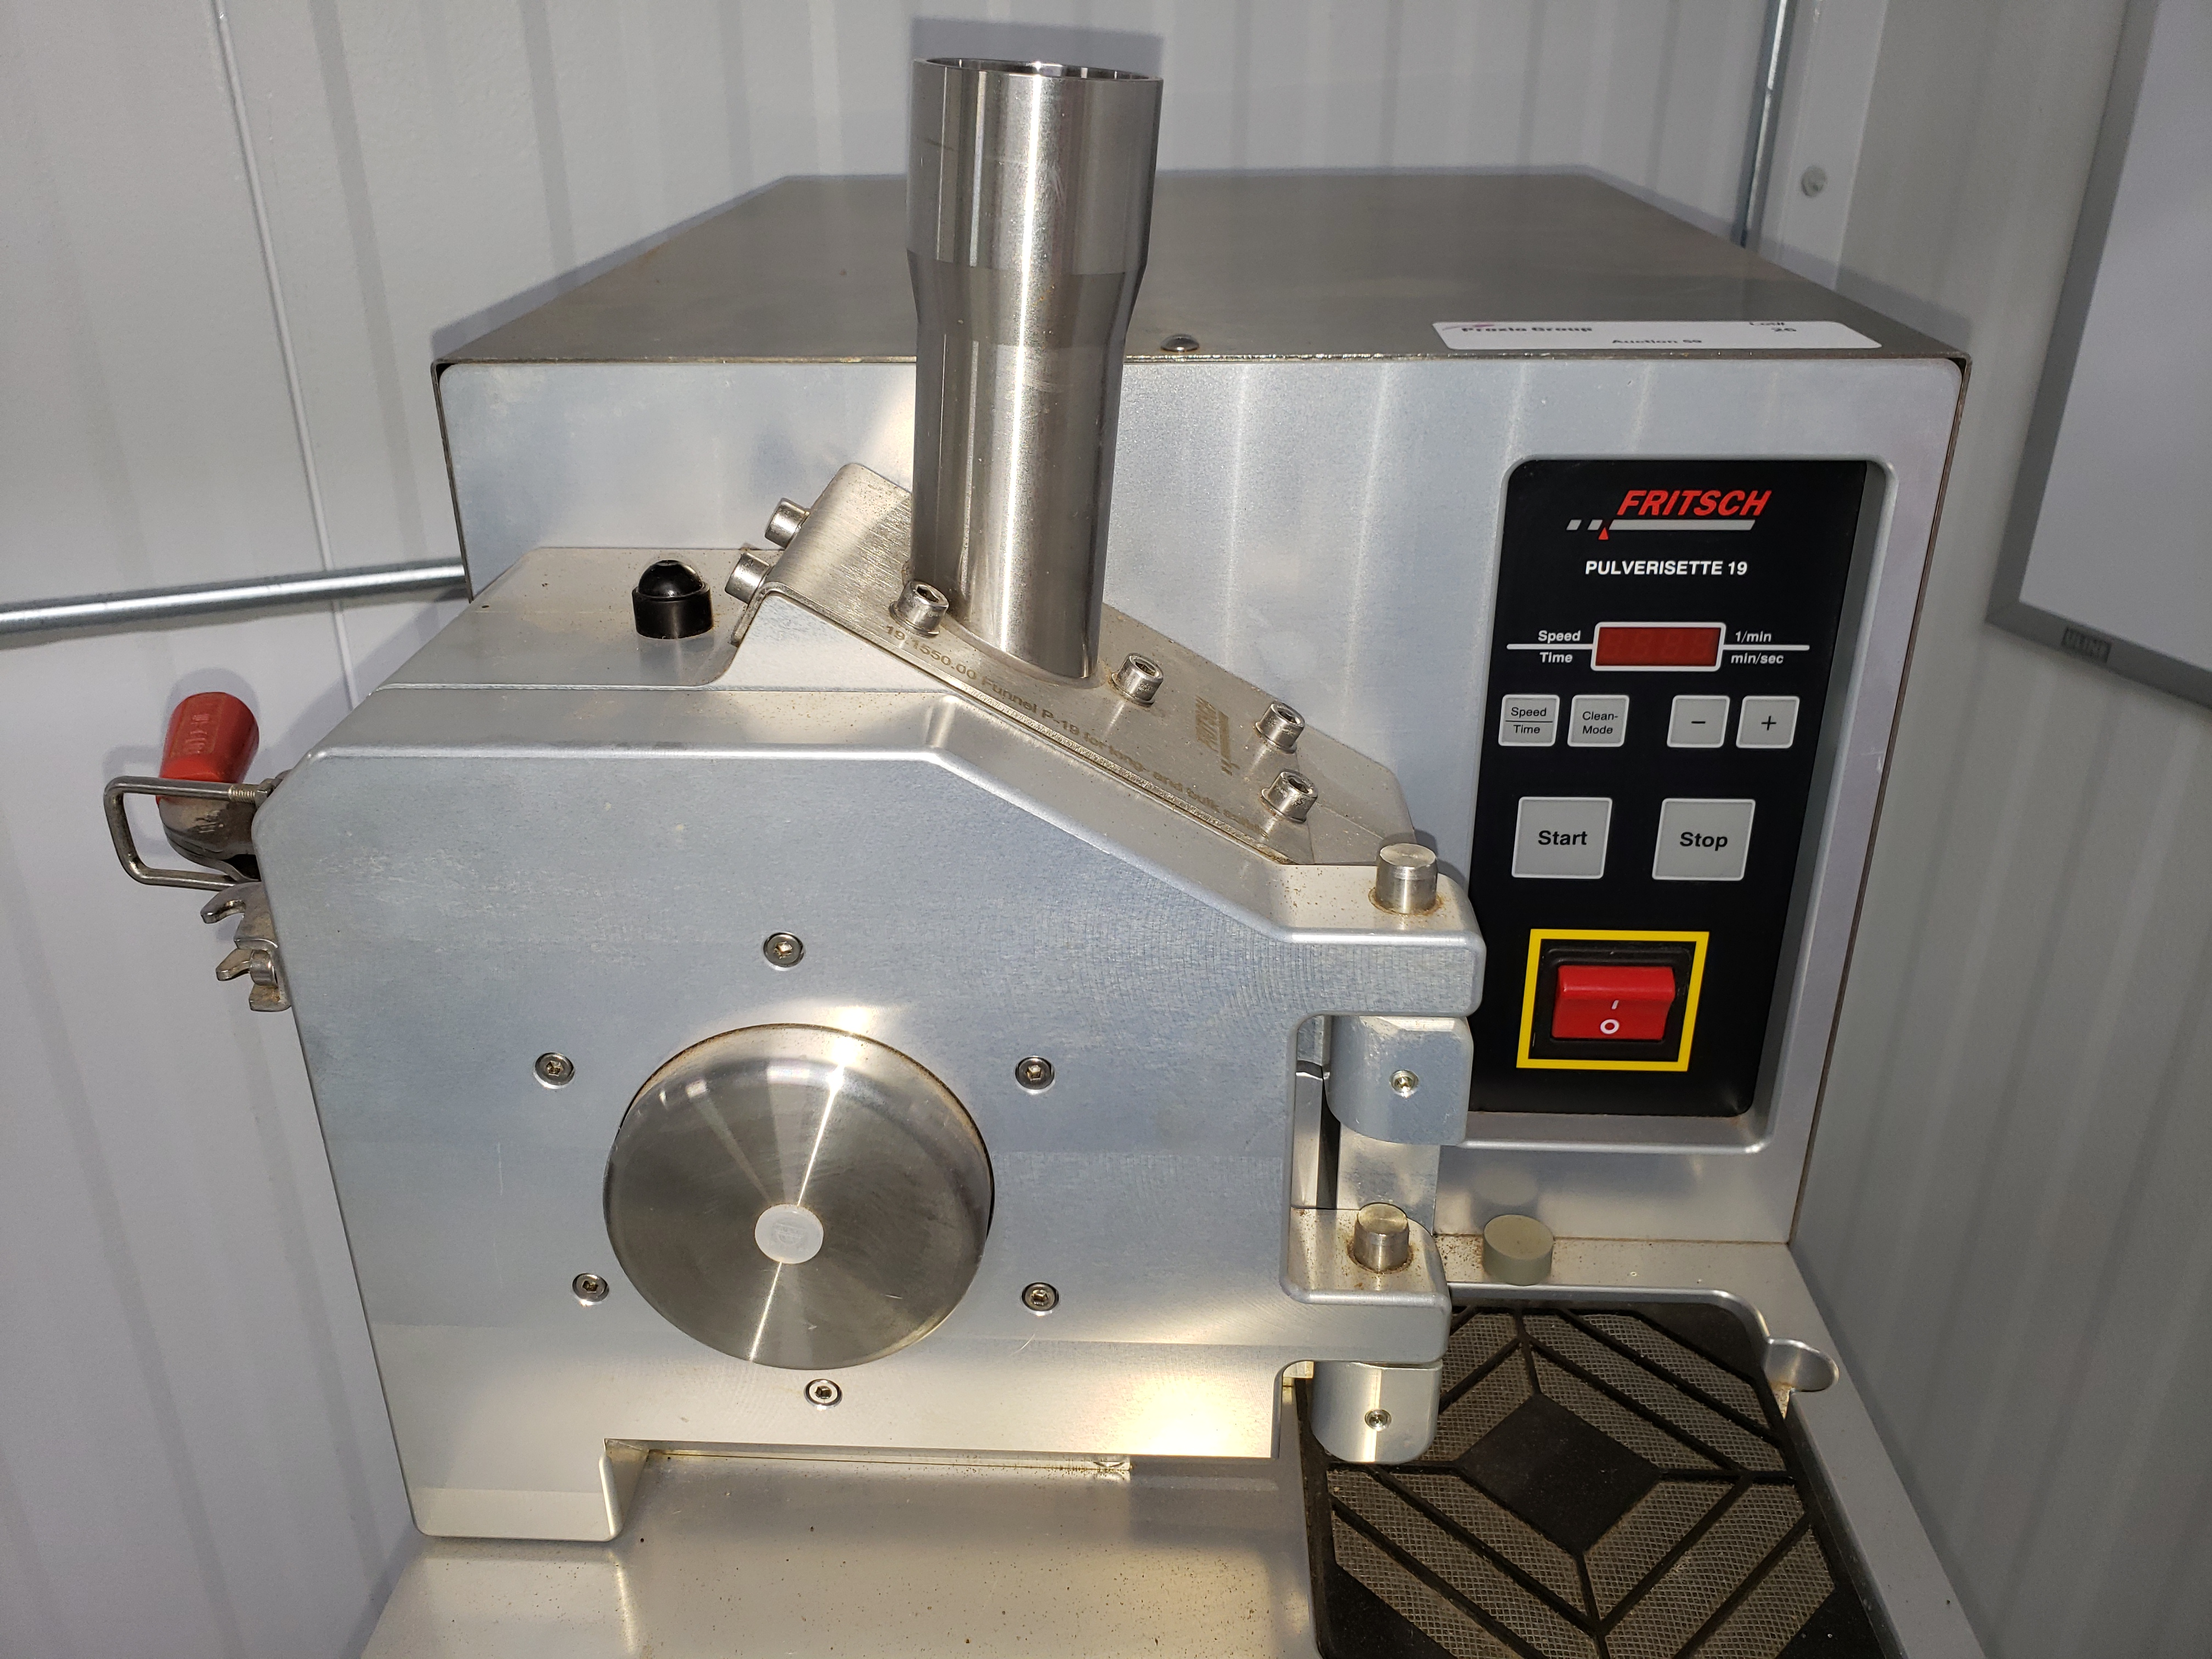 Fritsch Pulverisette 19 Universal Cutting Mill - Image 7 of 8